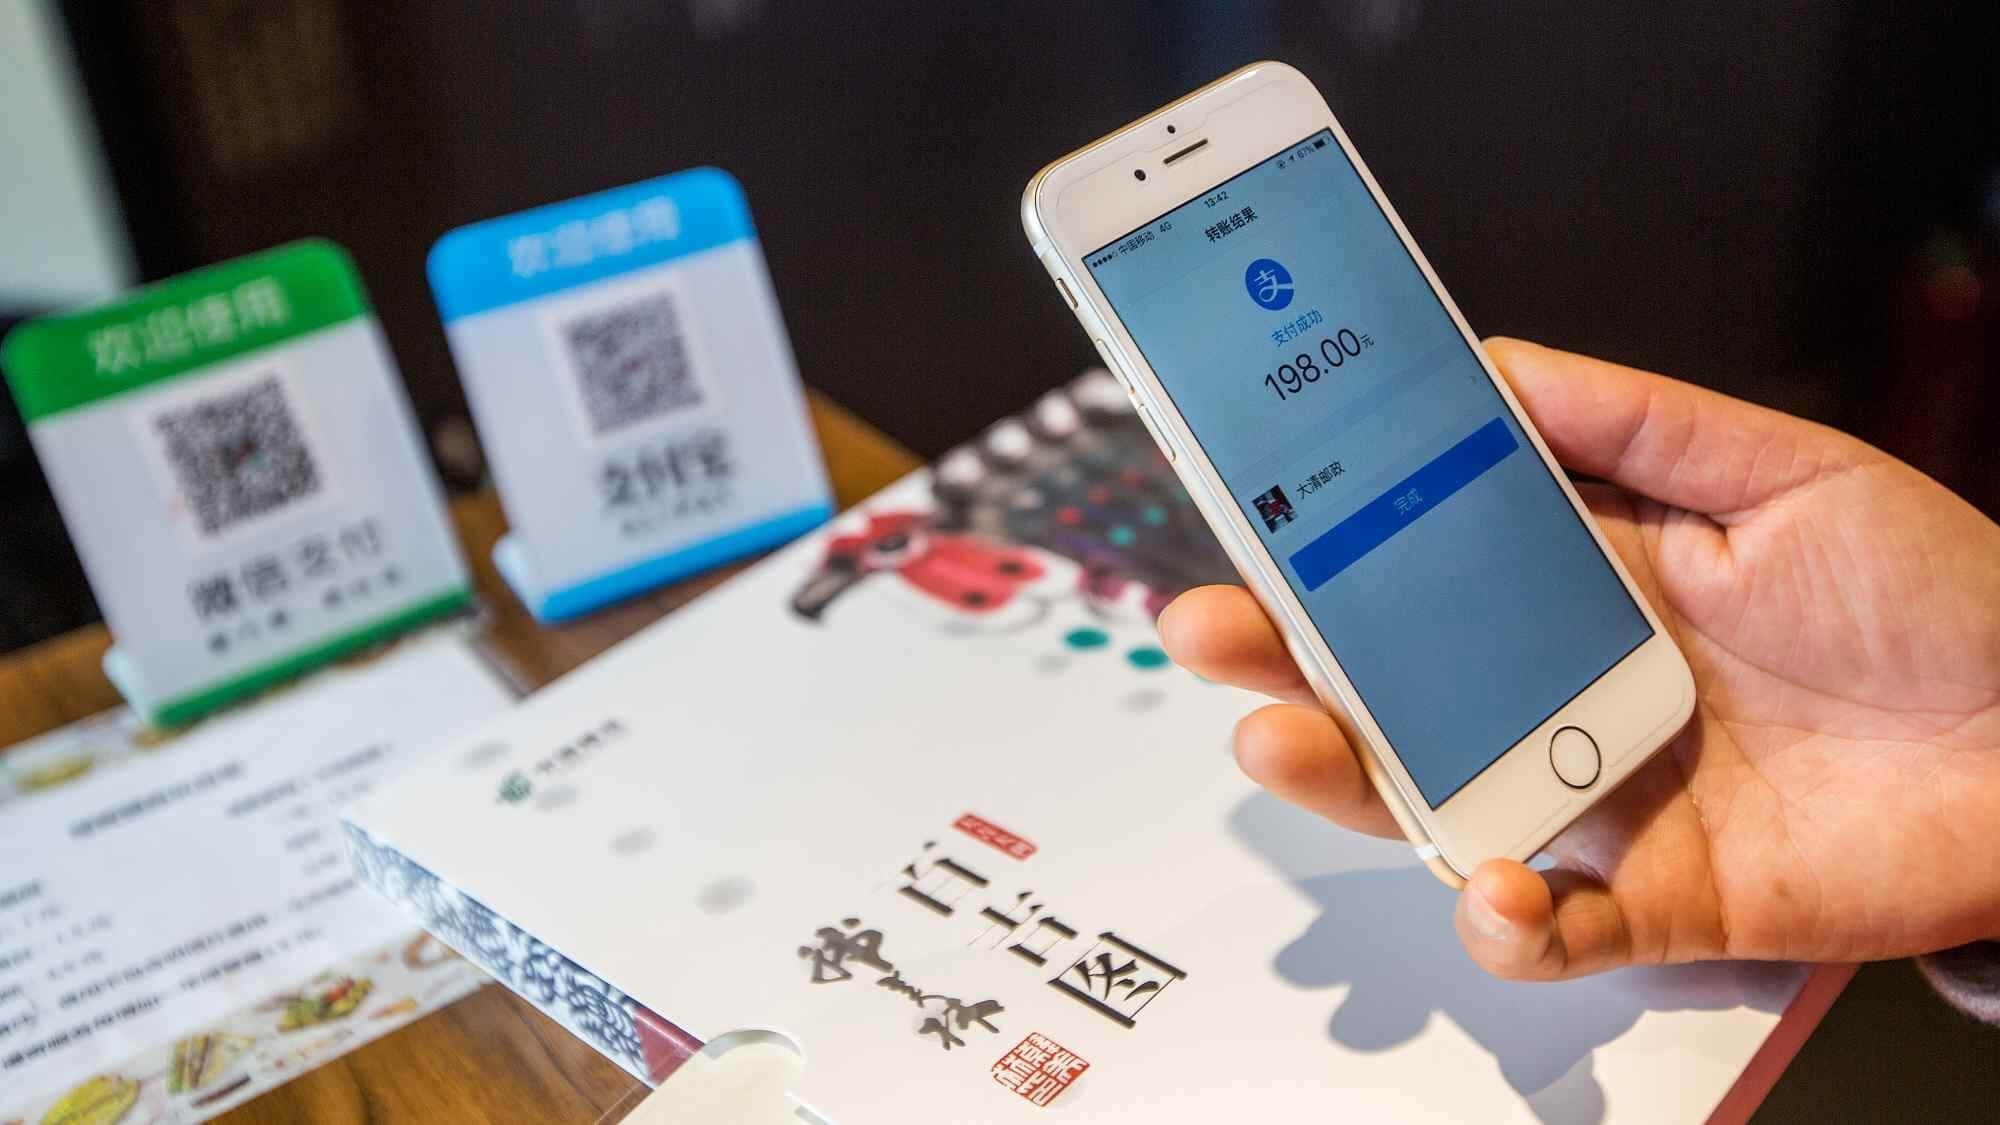 PayPal expands to China through GoPay